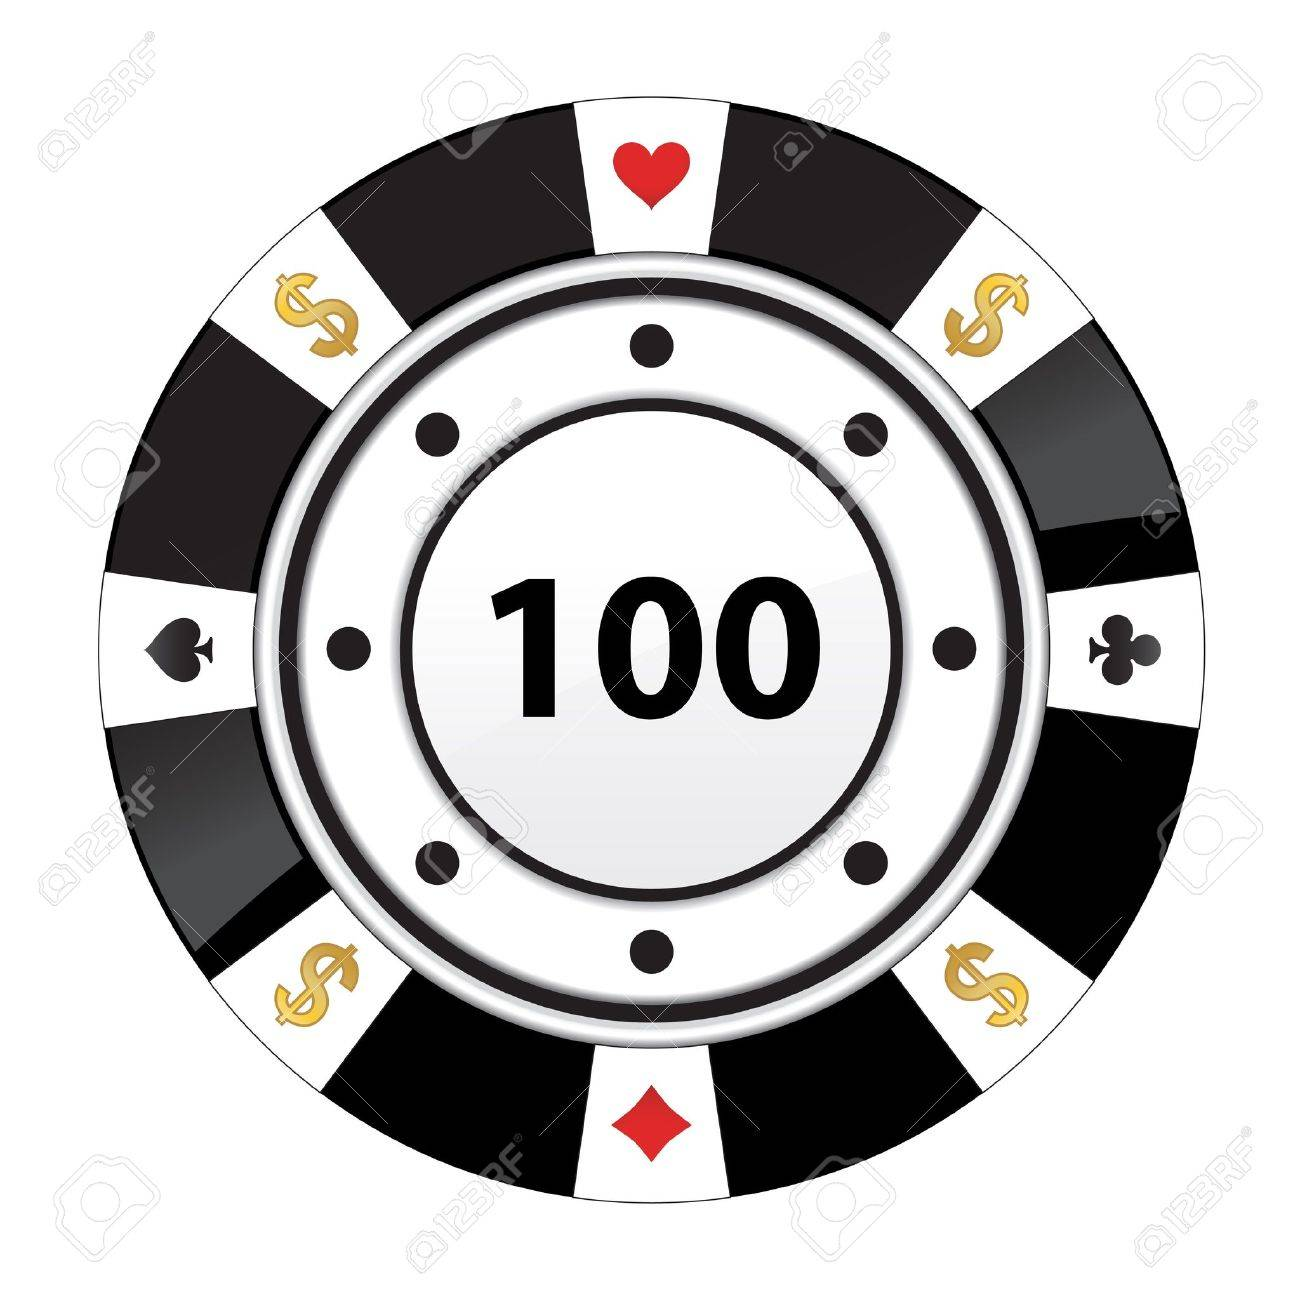 Black and white poker chip stack clipart picture freeuse library Poker Chips Drawing | Free download best Poker Chips Drawing on ... picture freeuse library